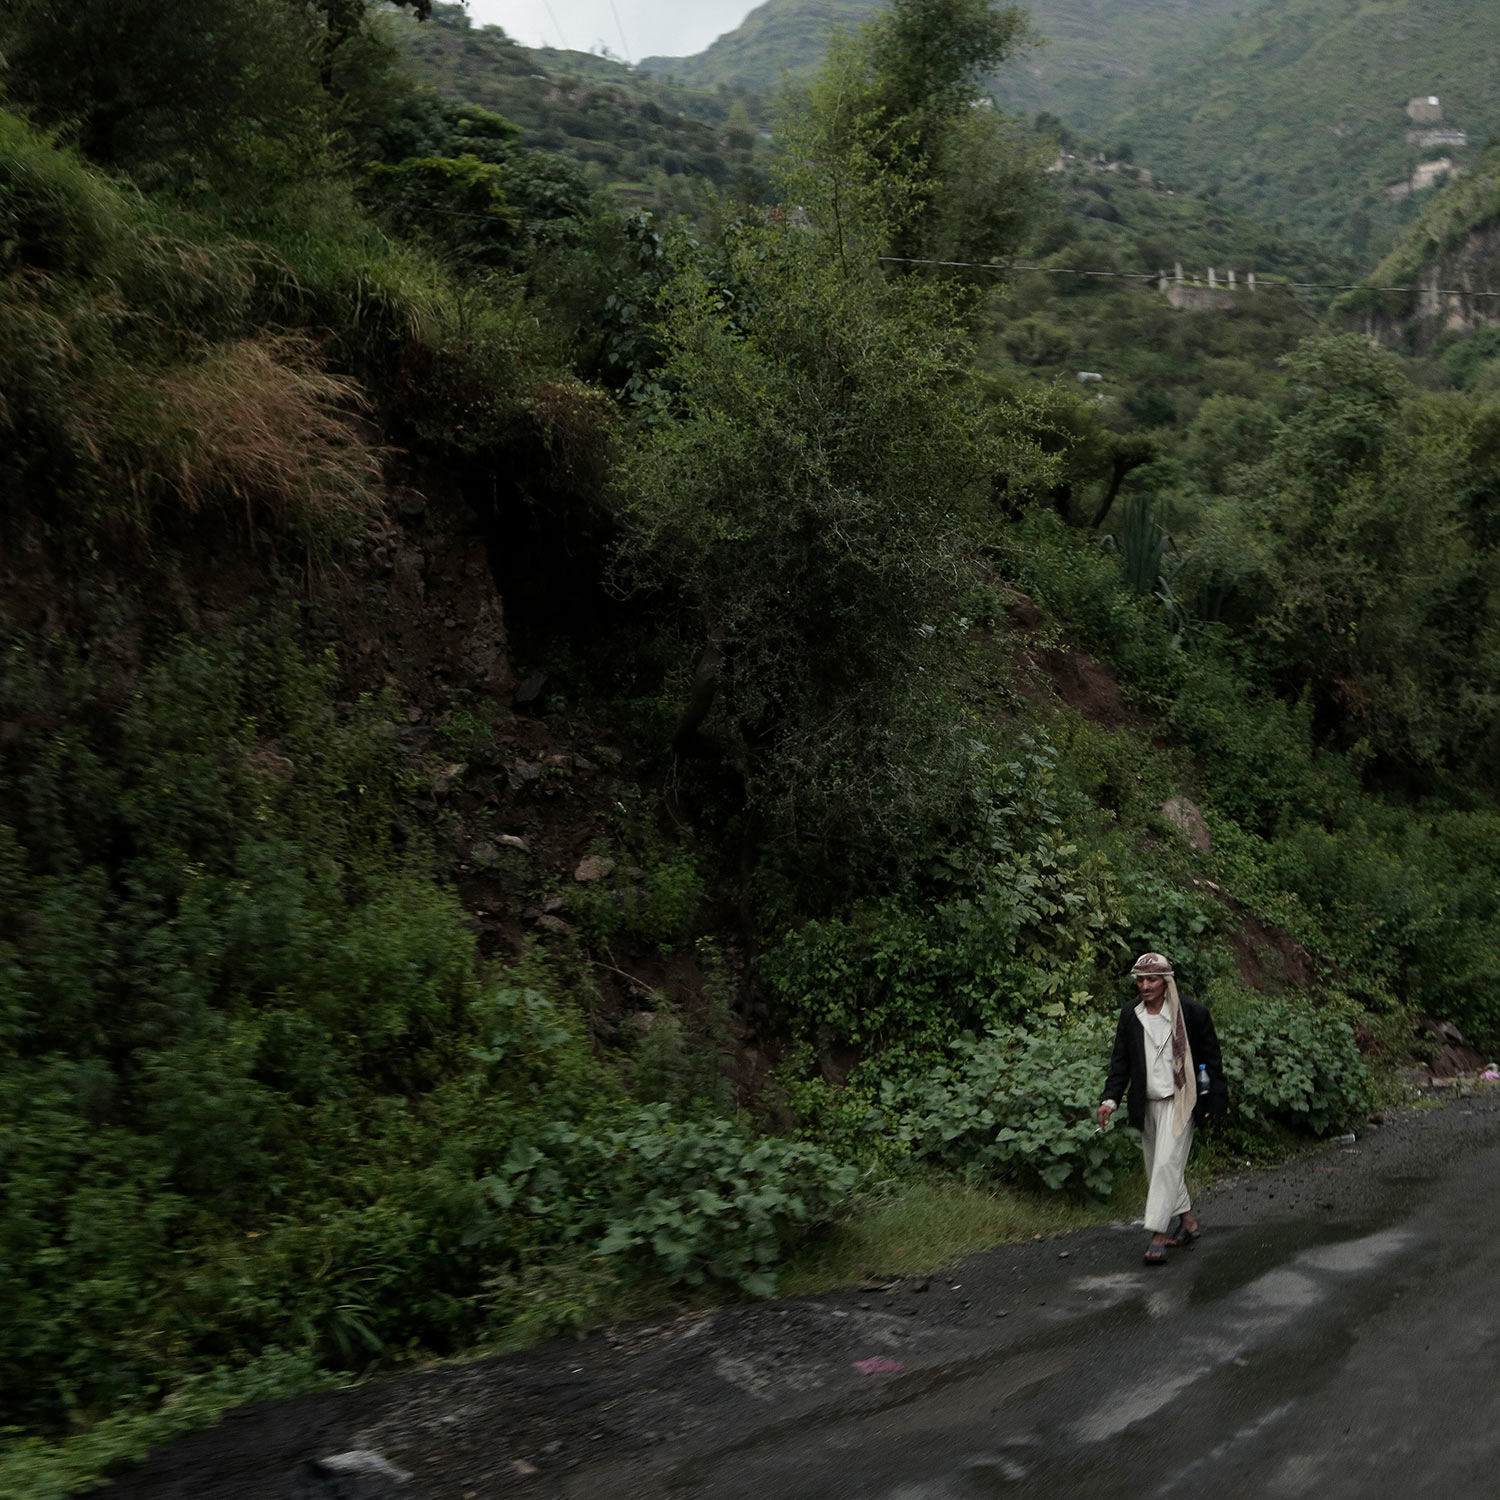 In this Aug. 3, 2018 photo, a man walks on a road in Ibb, Yemen. (AP Photo/Nariman El-Mofty)